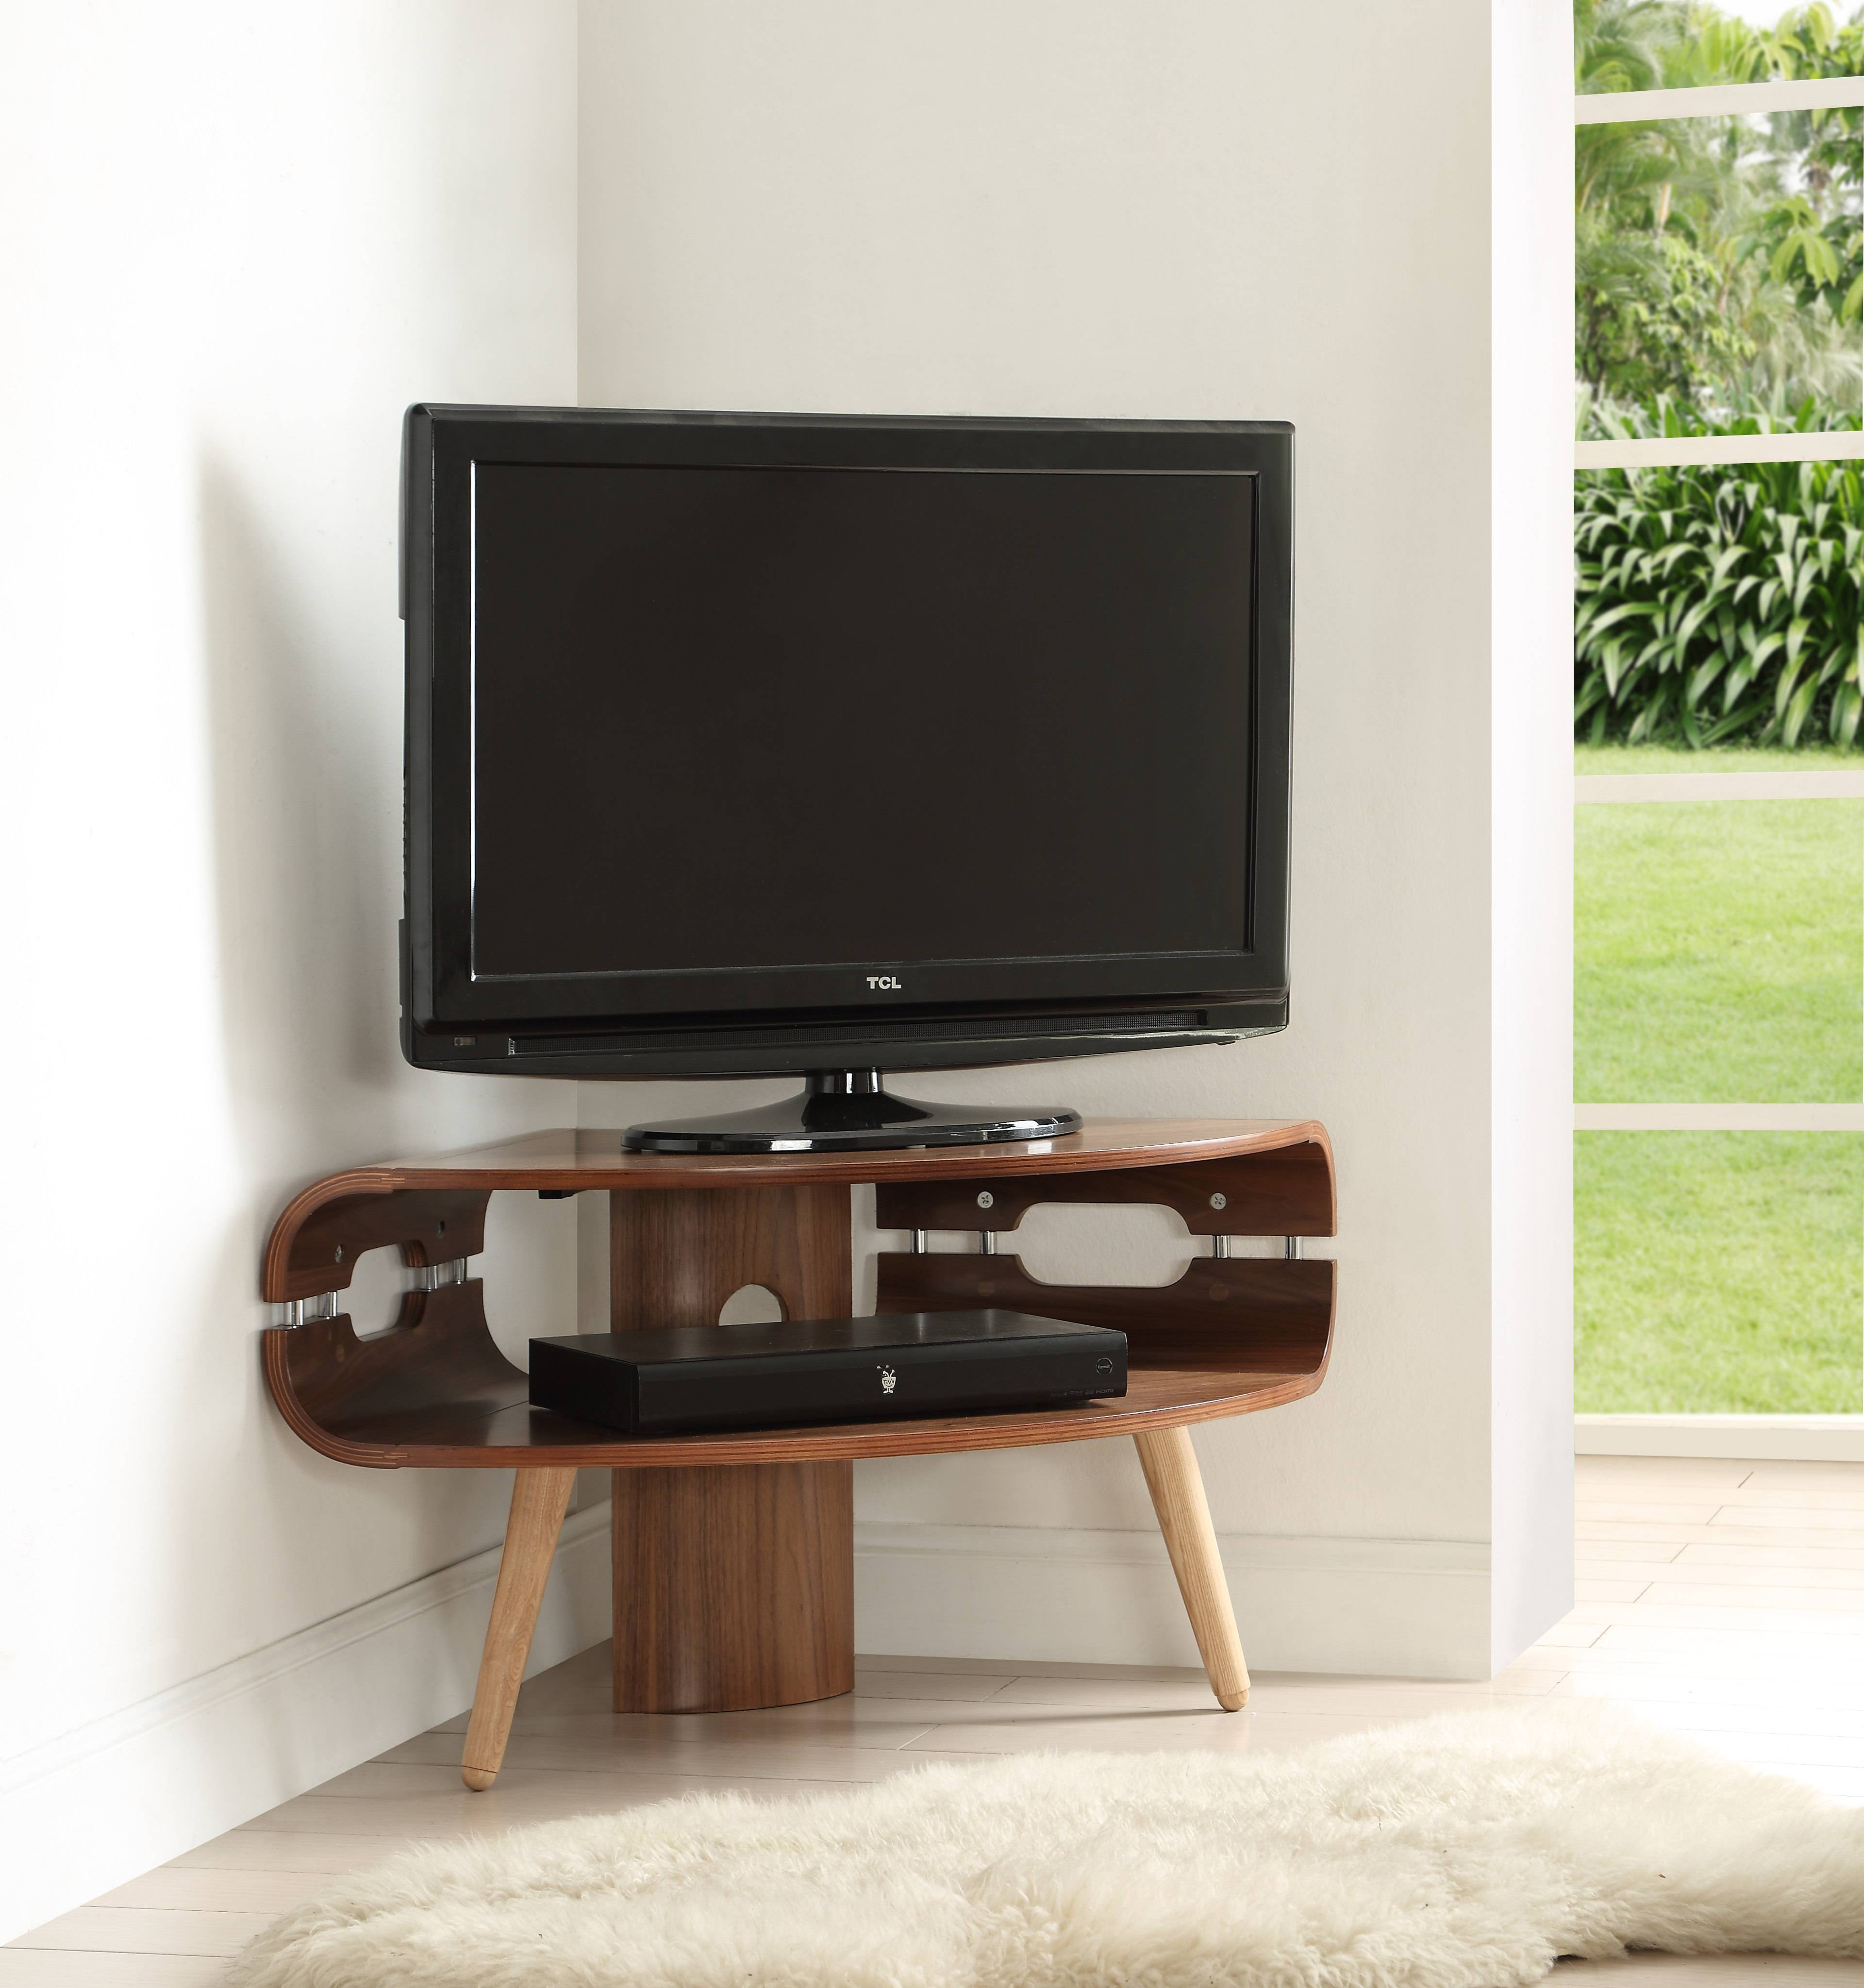 Jf701 Corner Tv Stand - Cooks for Retro Corner Tv Stands (Image 3 of 15)